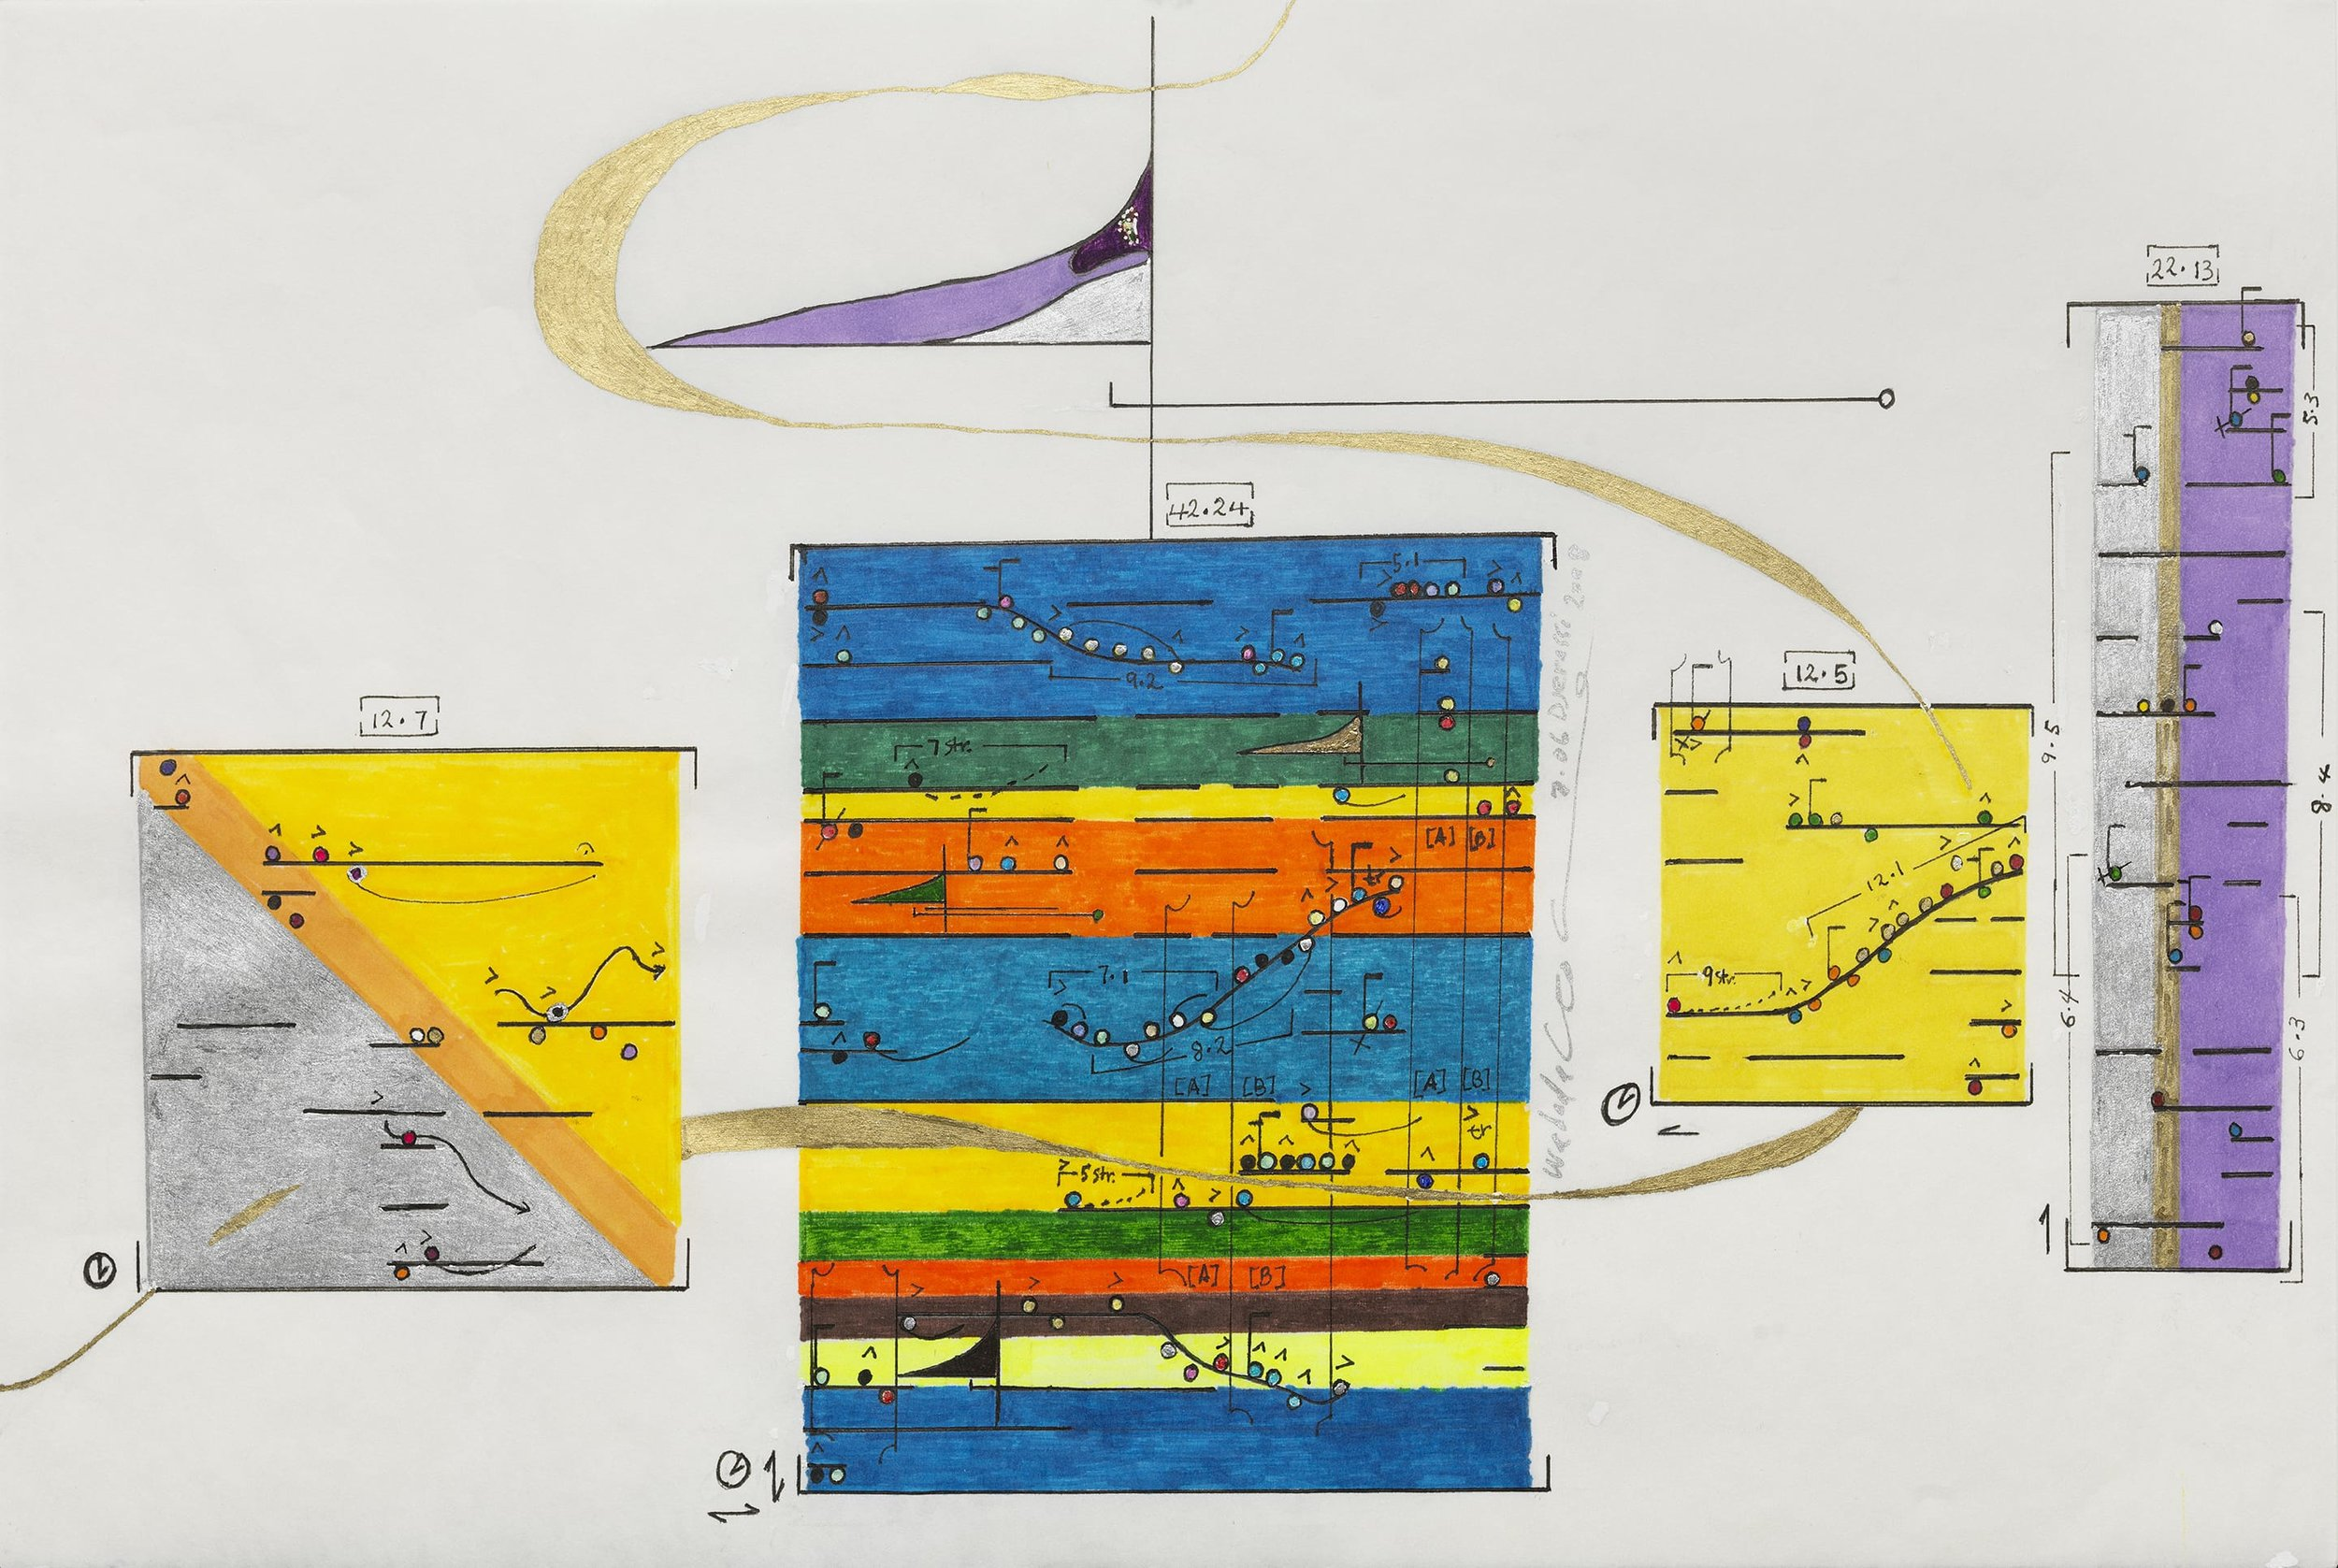 a score from Wadada Leo Smith's 'Ankhrasmation' (a graphic score. from left to write there are 4 different boxes. each box has different colors and symbols inside of it. there is a swirl running through the first three boxes and along the top in some more lines and shapes.)